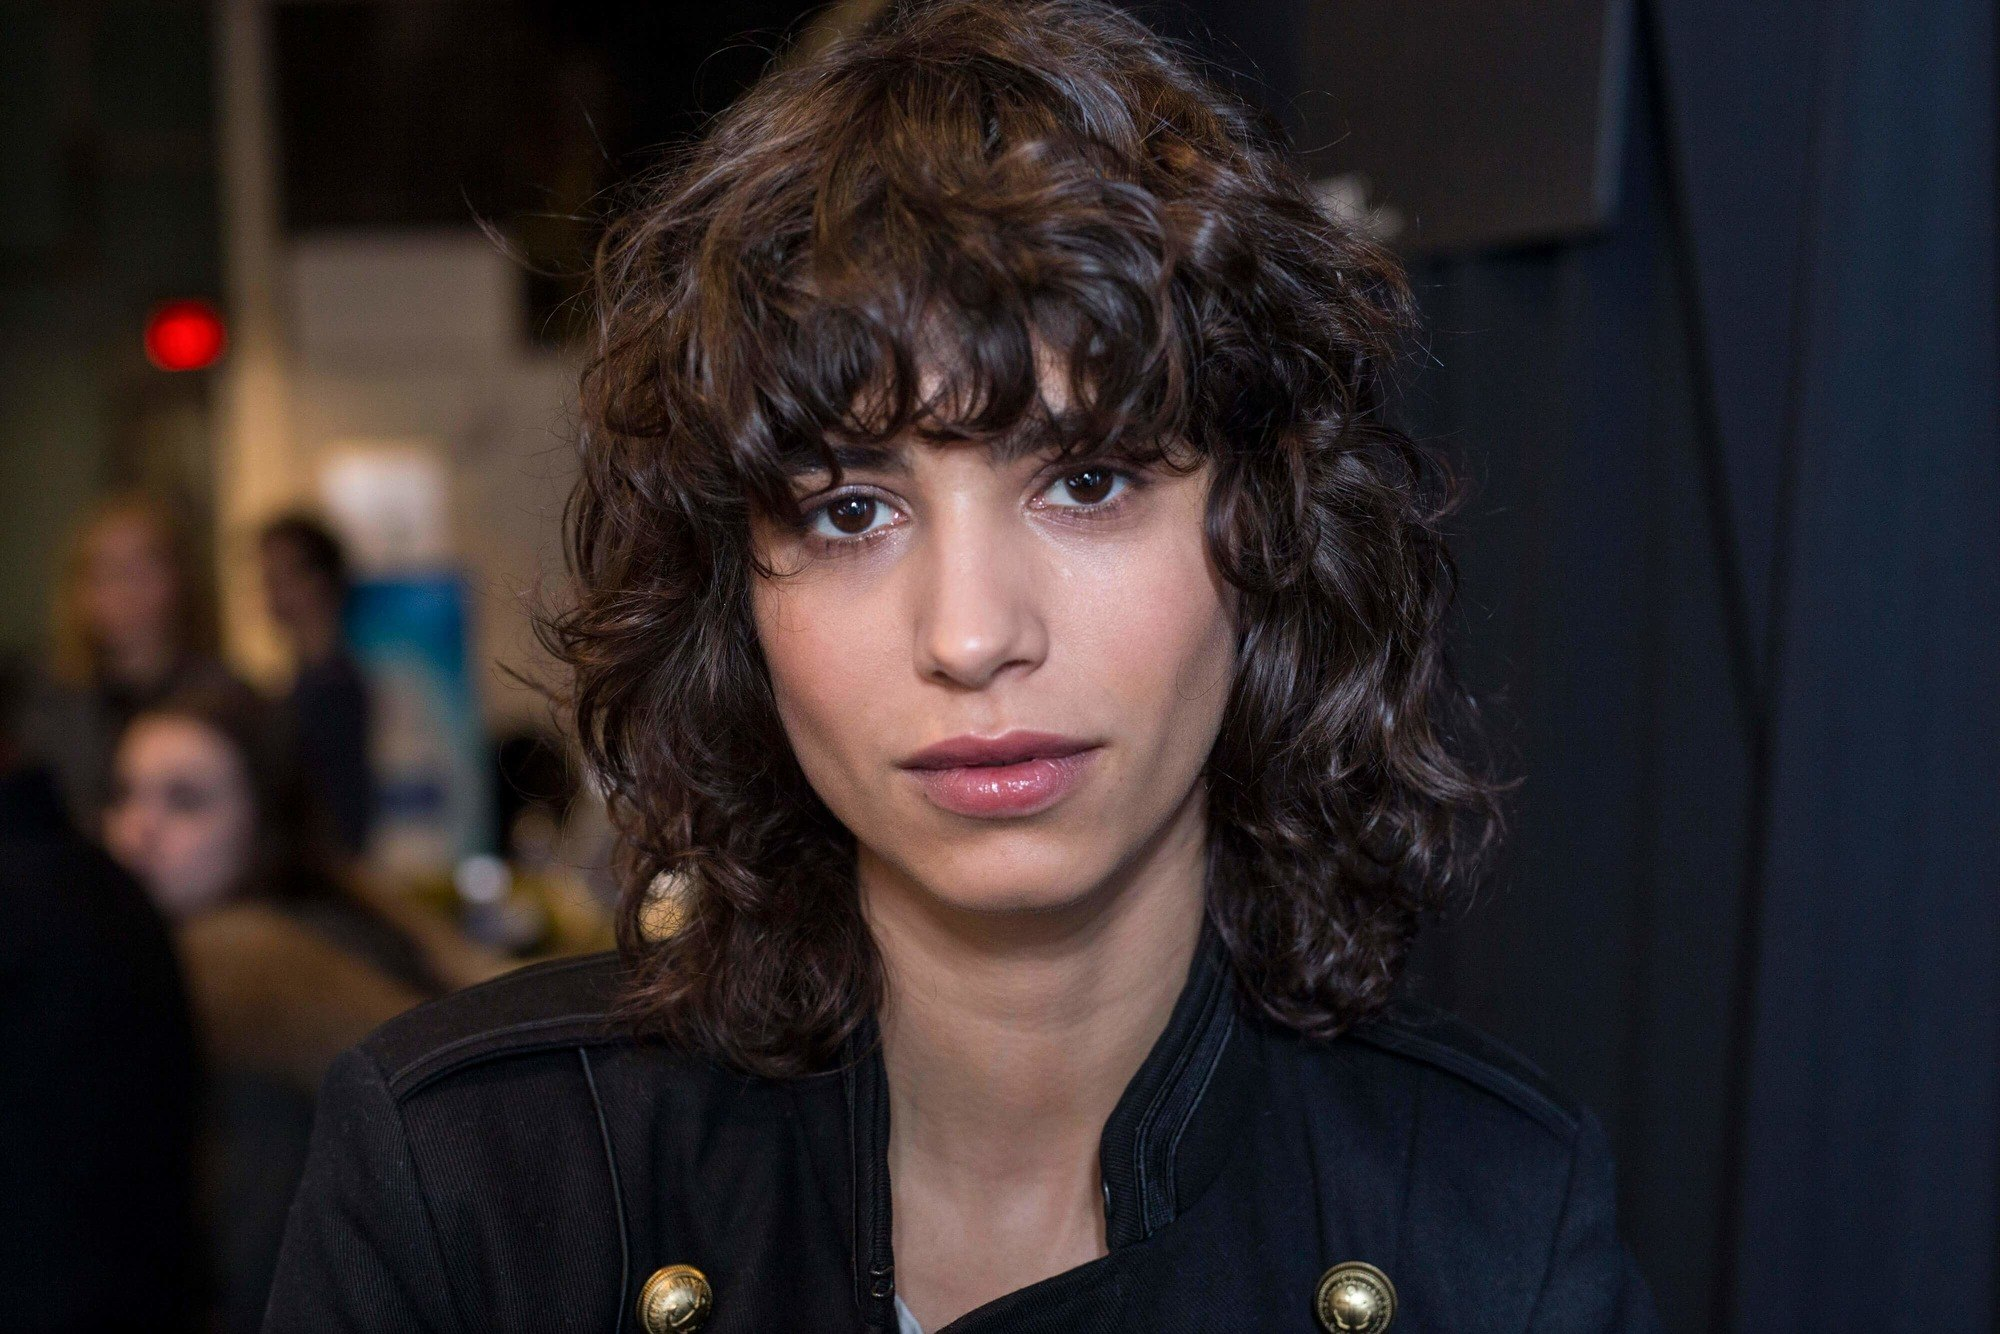 Bob Haircuts Guide Inspirational Hairstyles Tips And Trends